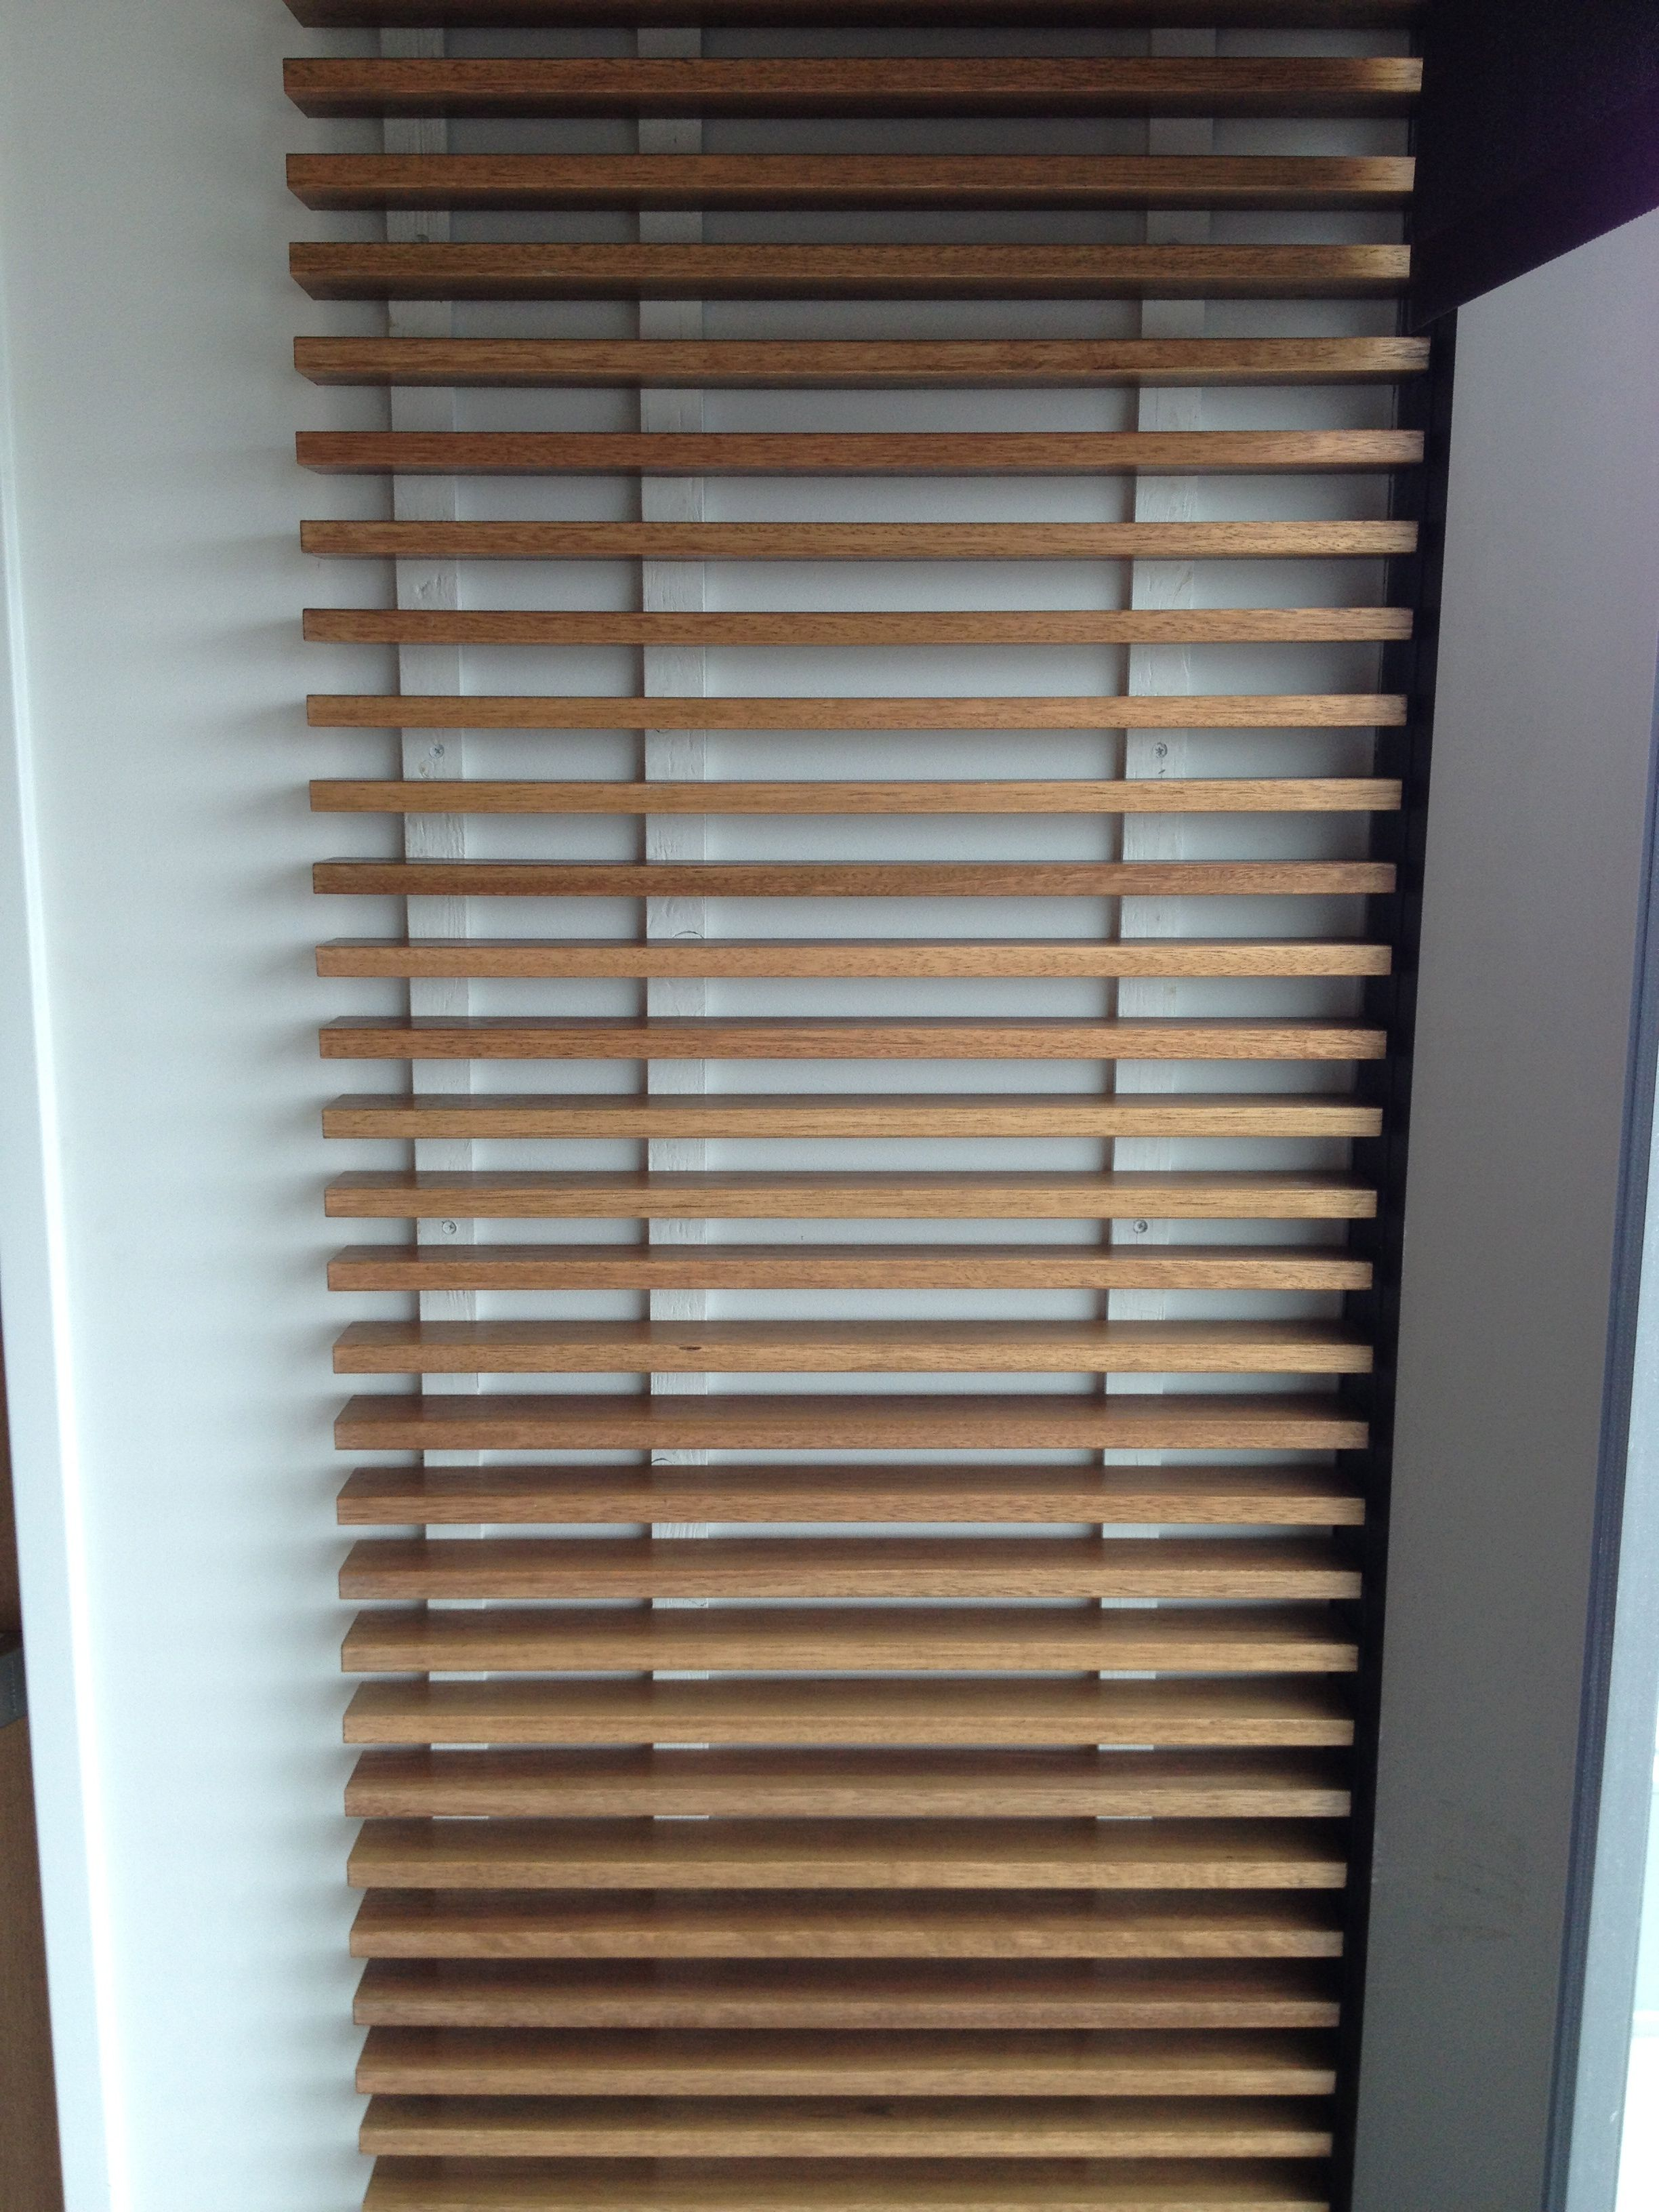 Slat Walls Wood Slat Wall Wood Slat Walls In 2019 Wood Slat Wall Slat